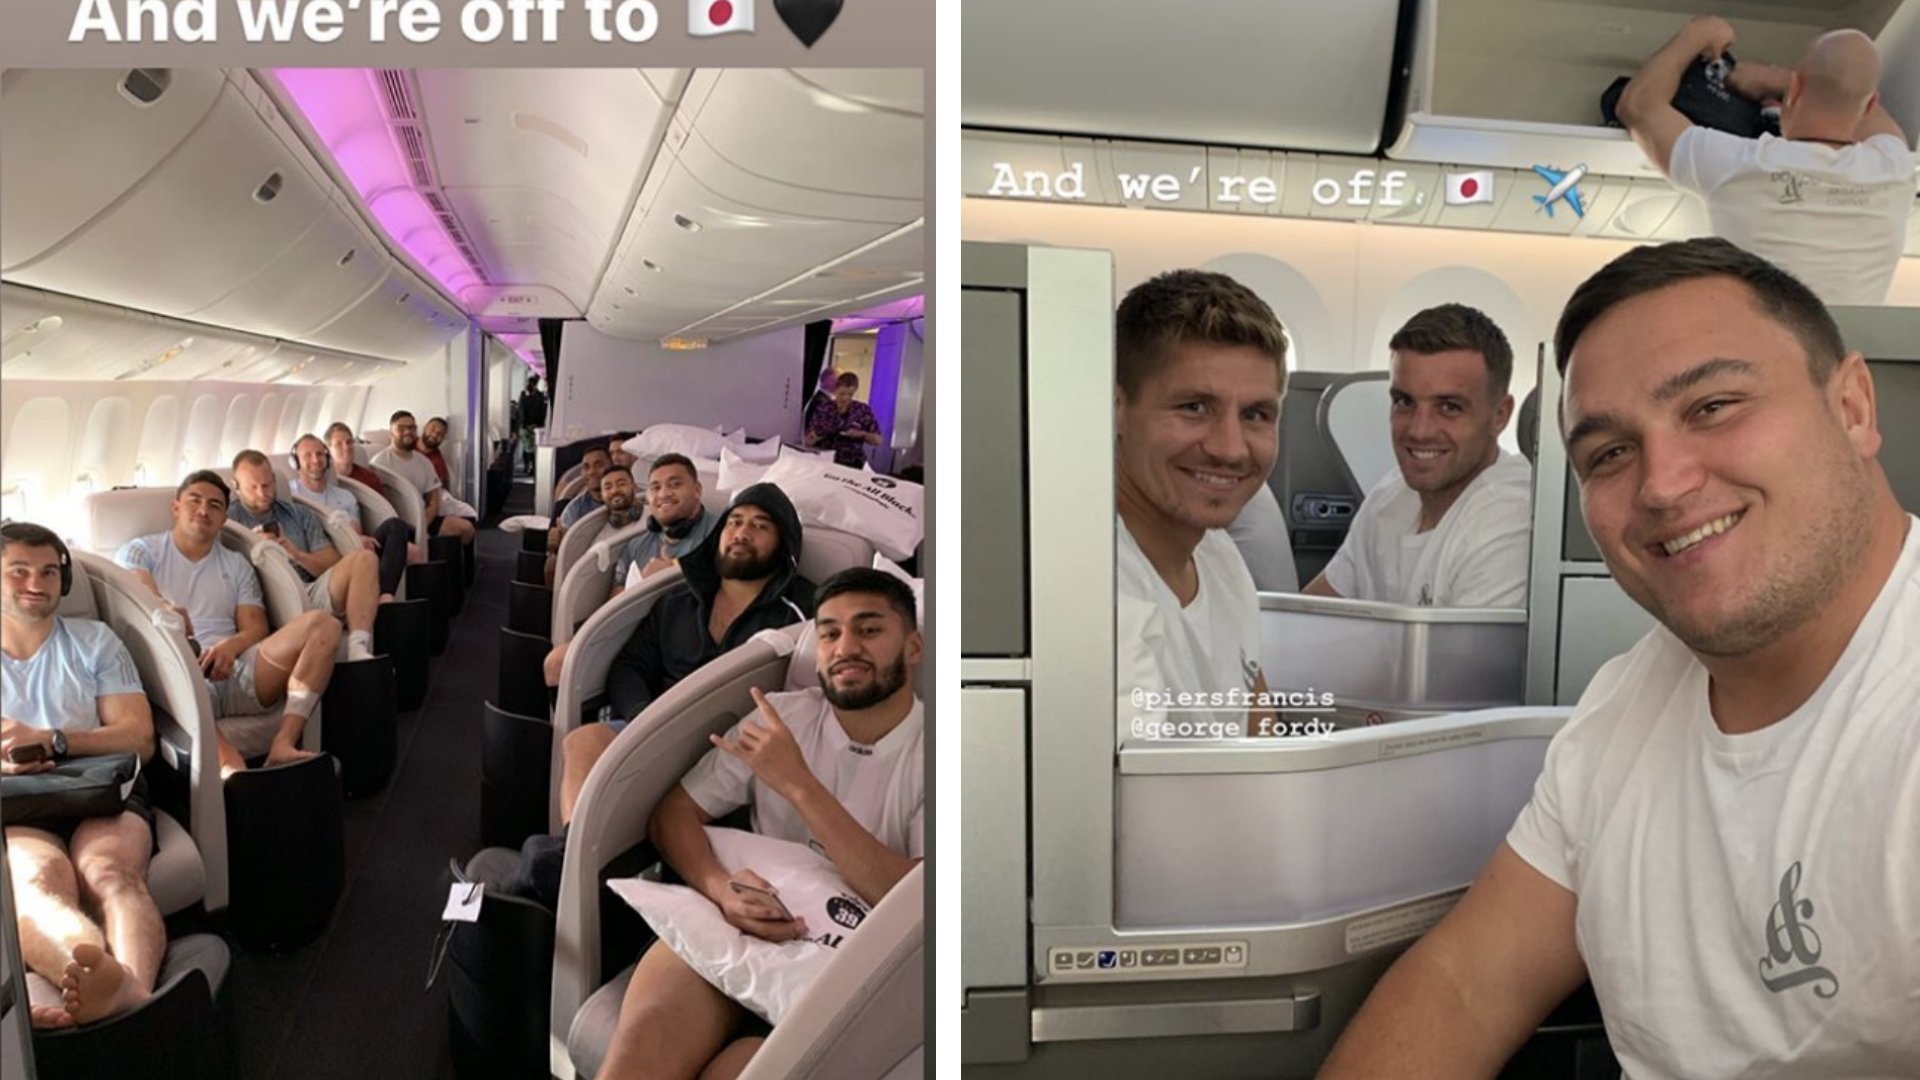 England and New Zealand leave for Japan - All the footage and videos